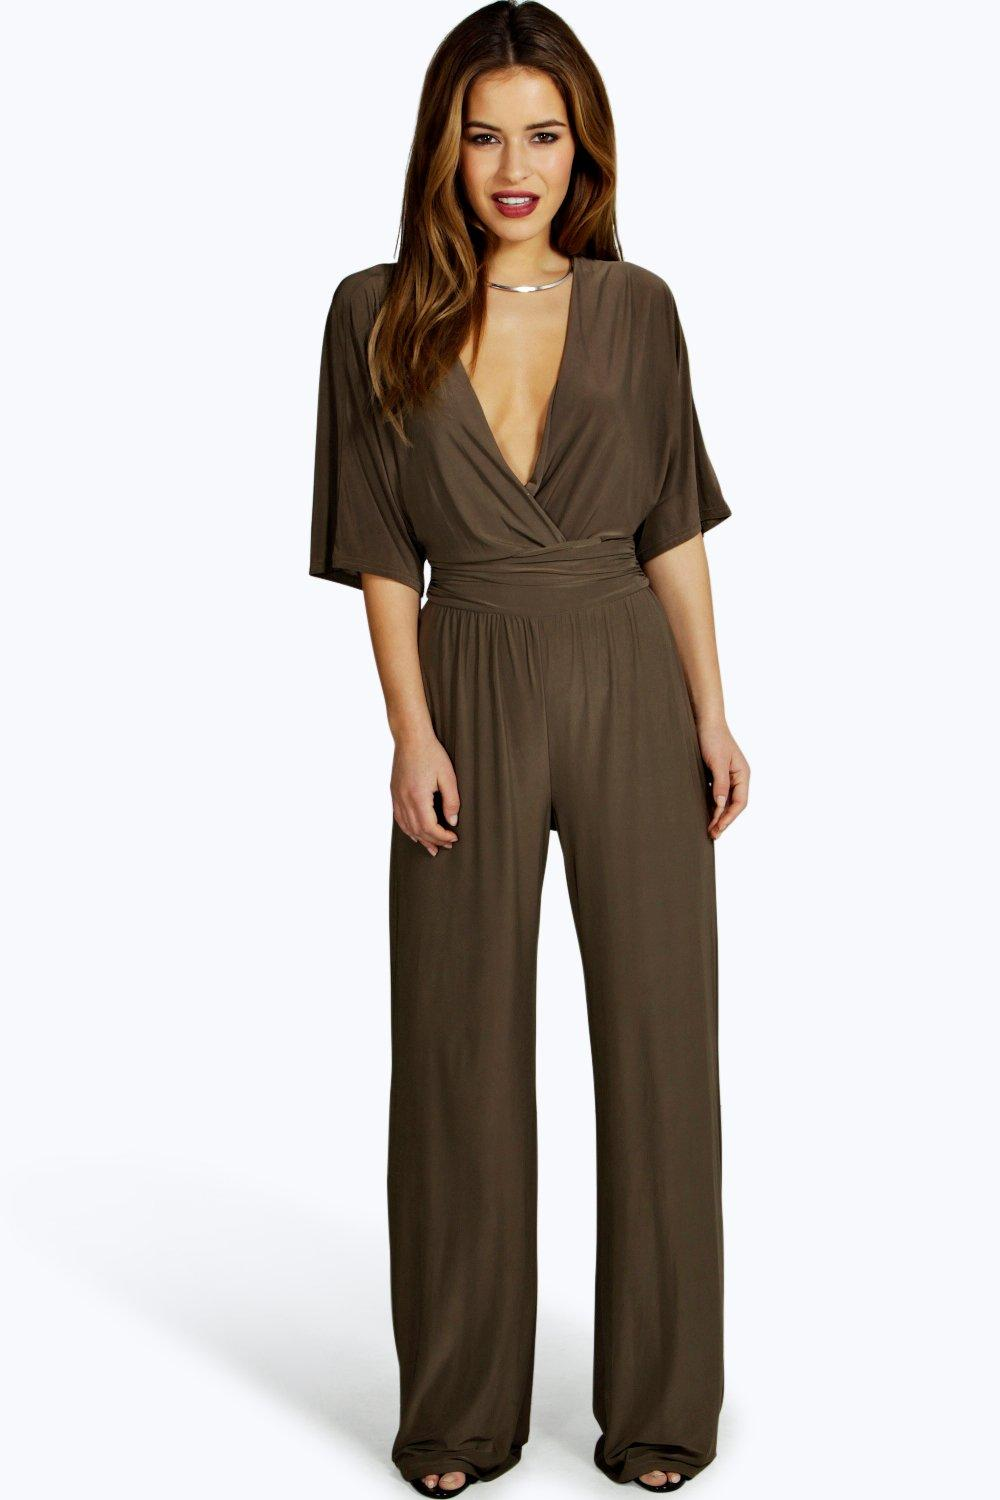 Buy Cheap Khaki Jumpsuit - Compare Womenu0026#39;s Outerwear Prices For Best UK Deals